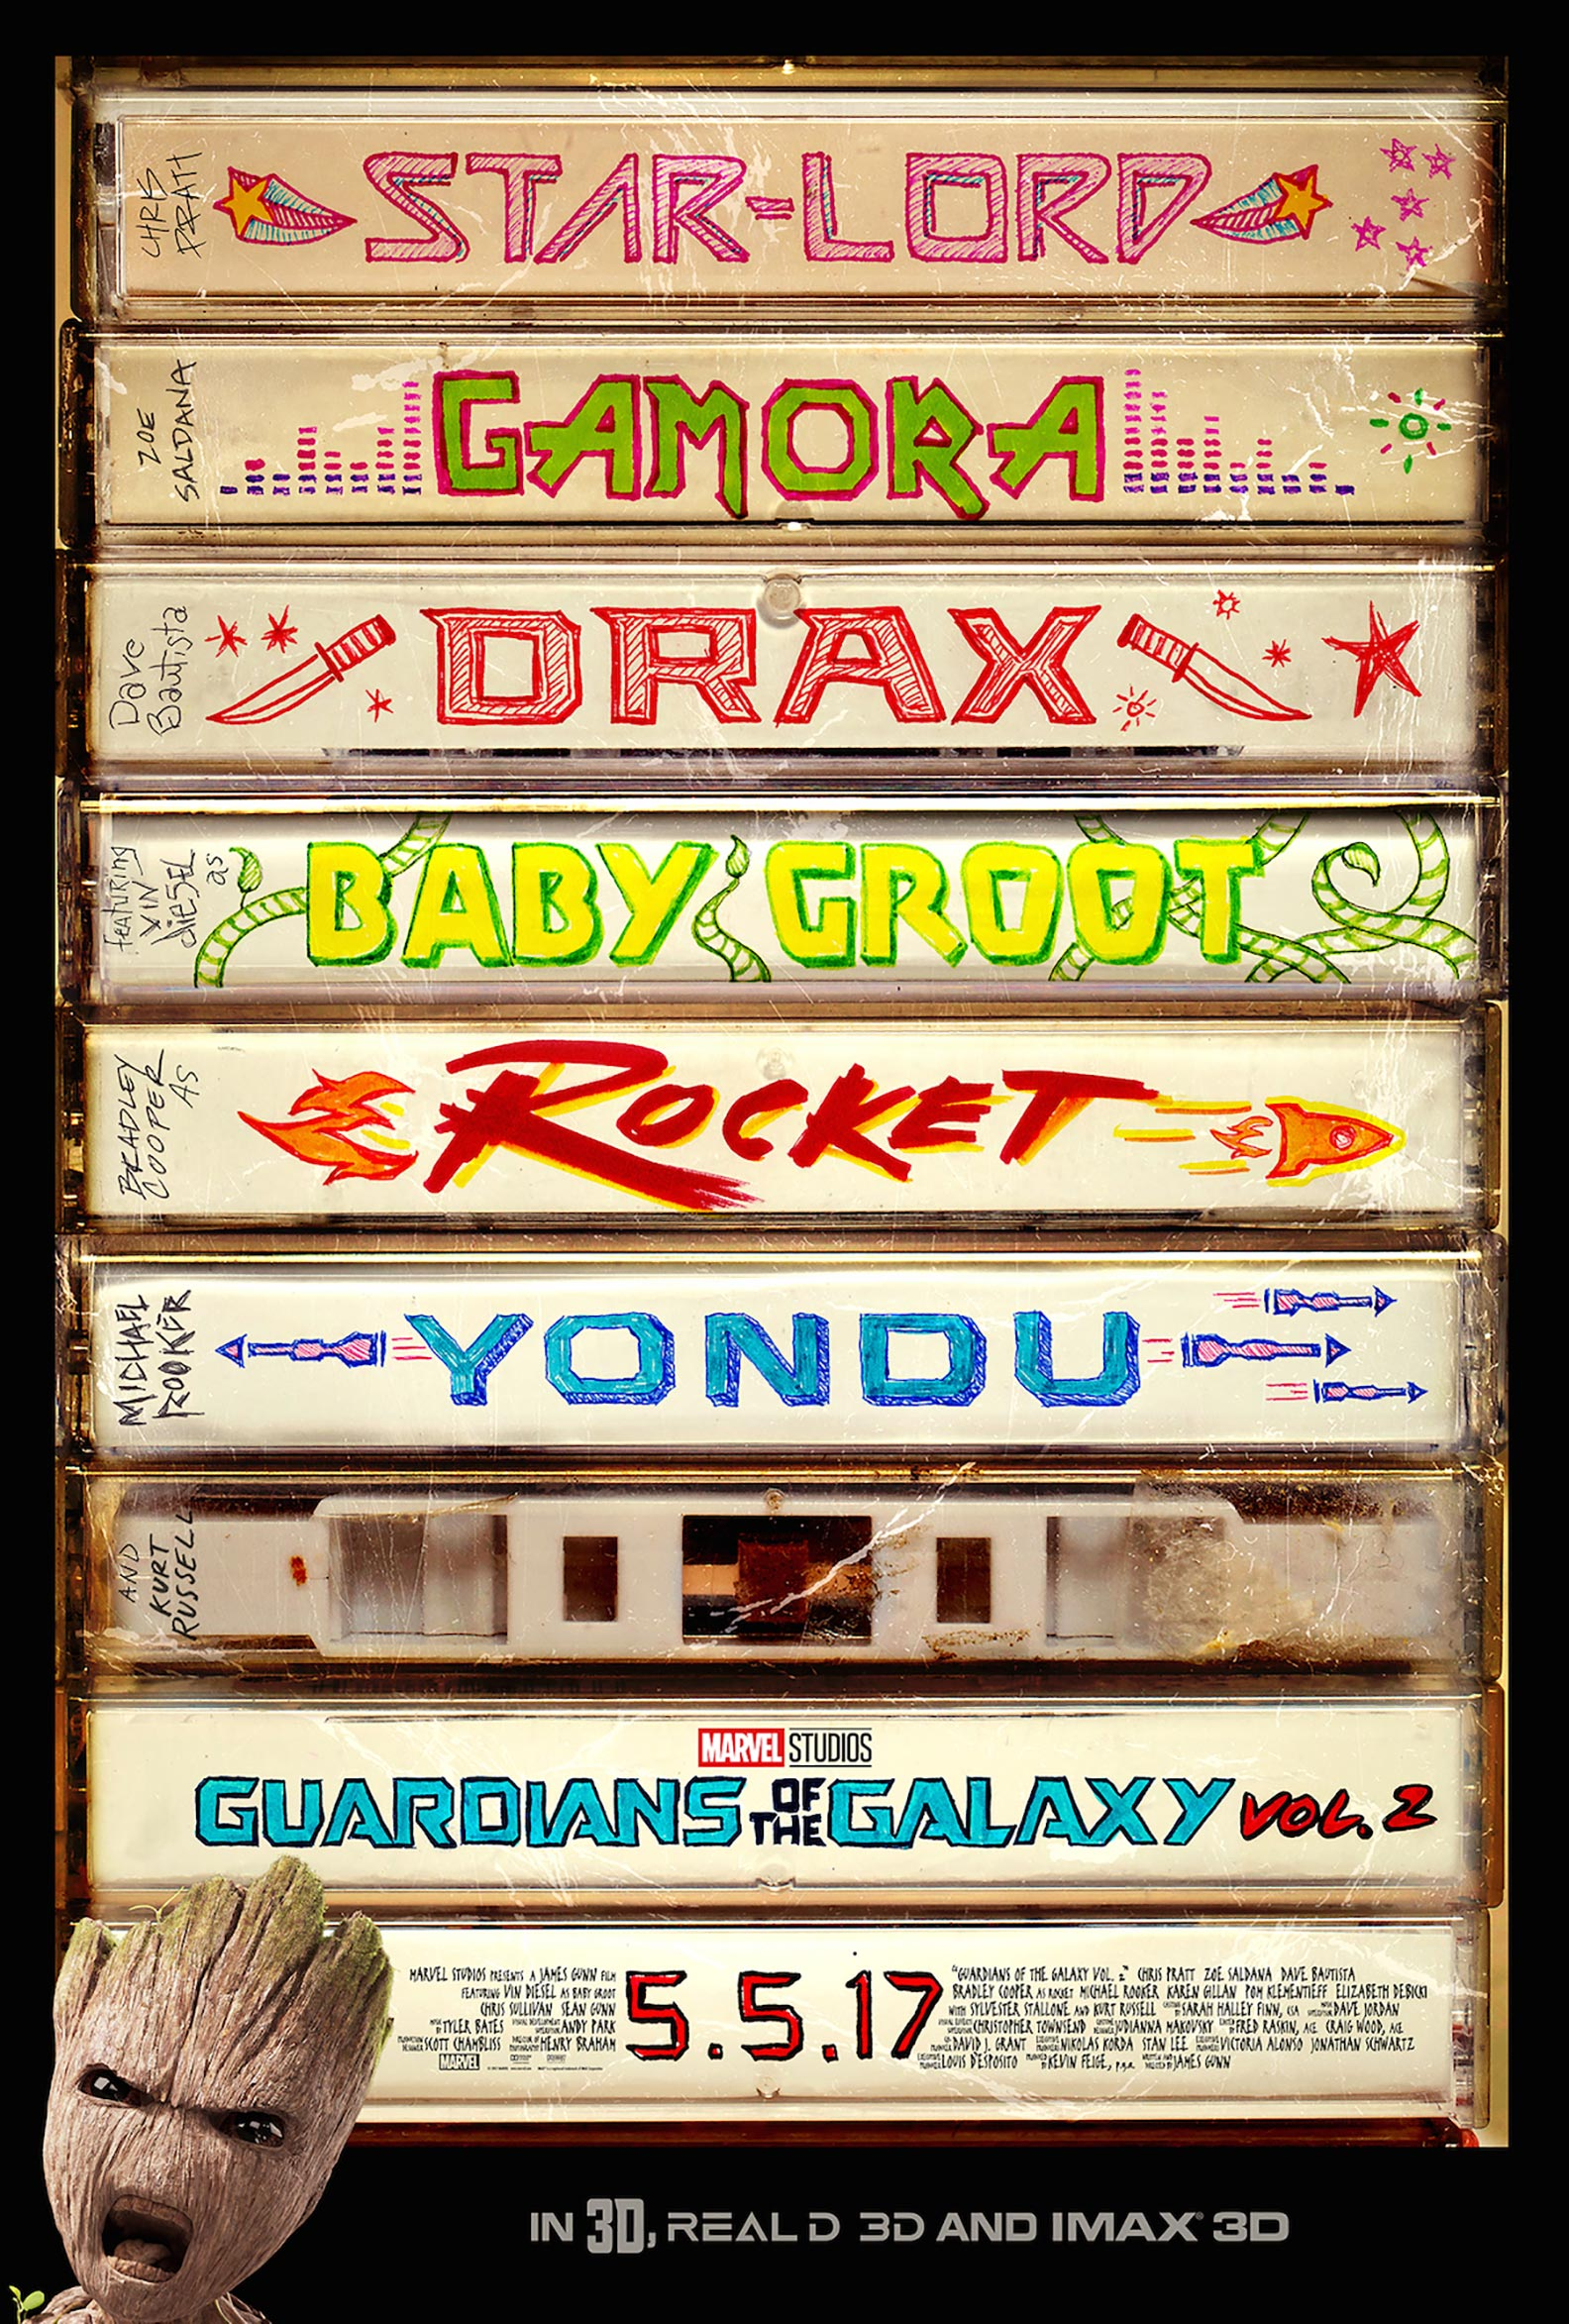 Guardians of the Galaxy Vol. 2 Poster #2